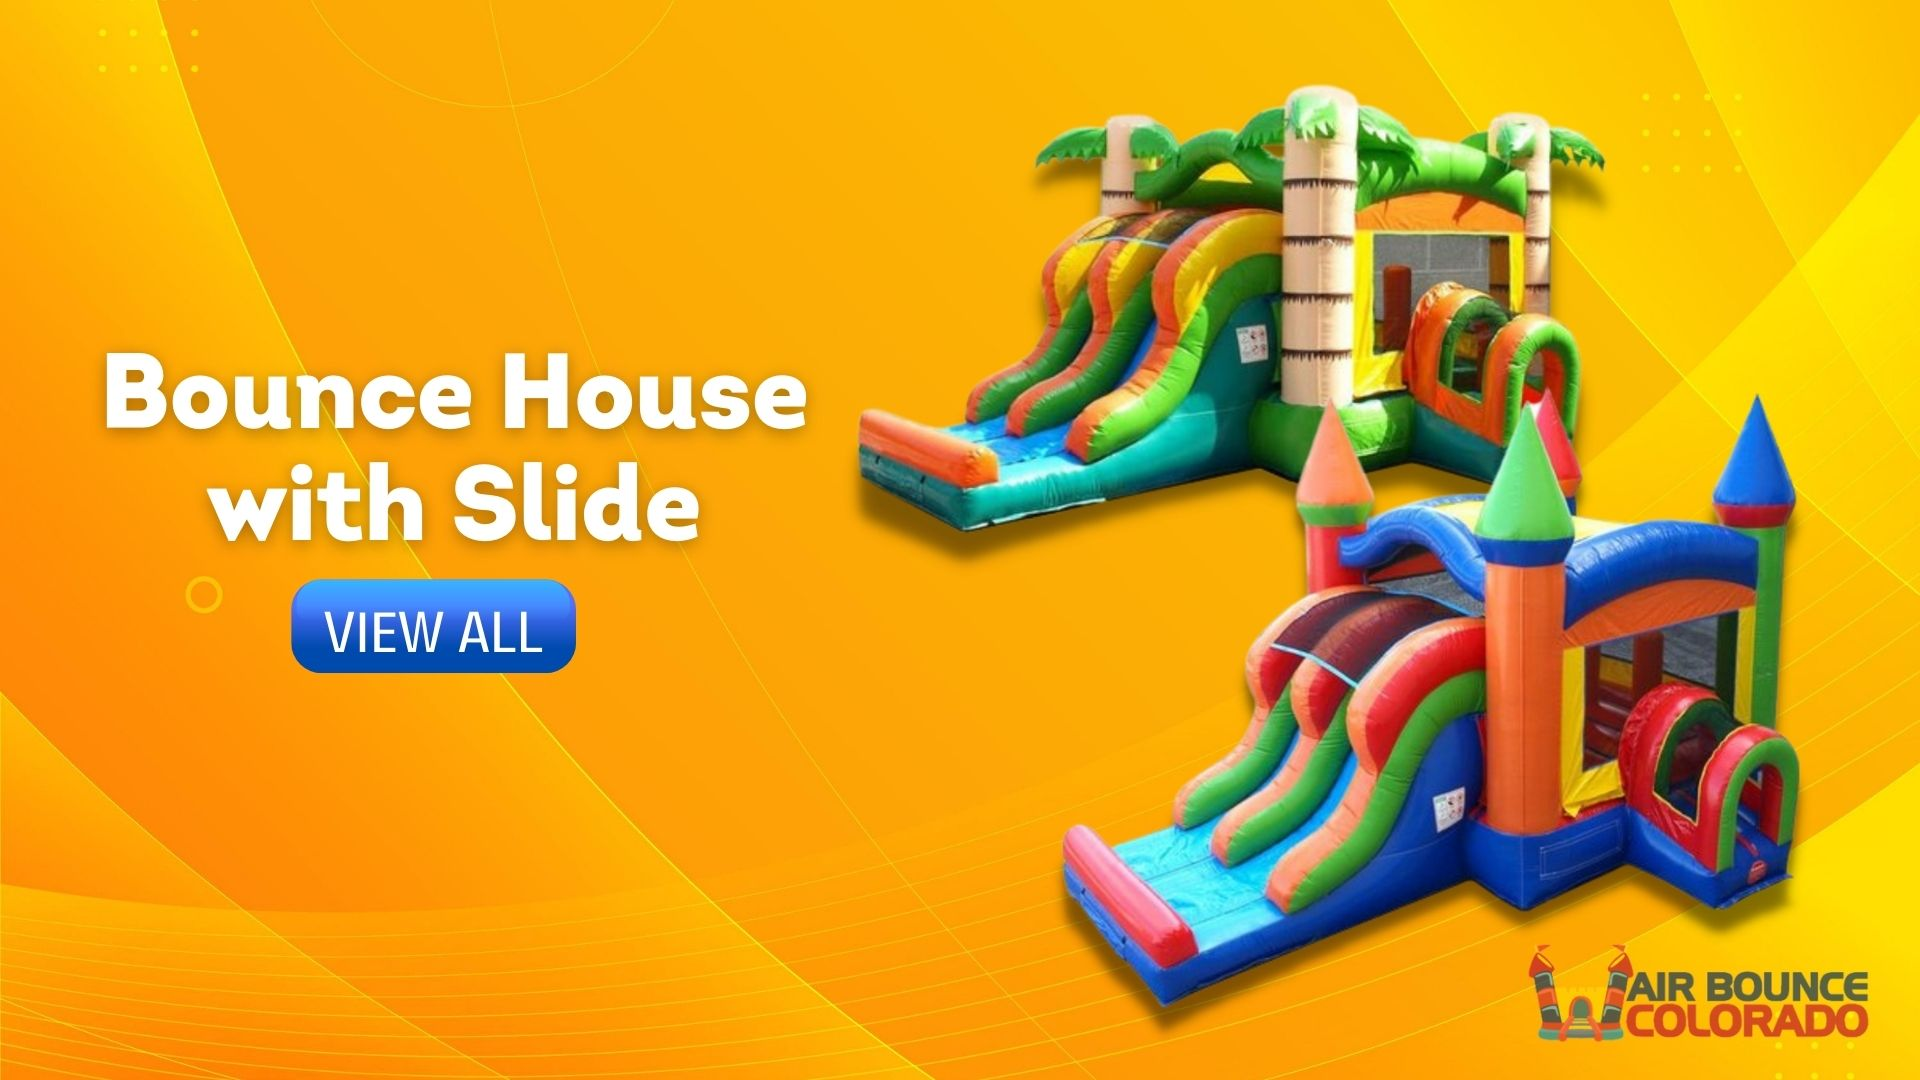 Castle Rock's Best Bounce House with Slide Rentals